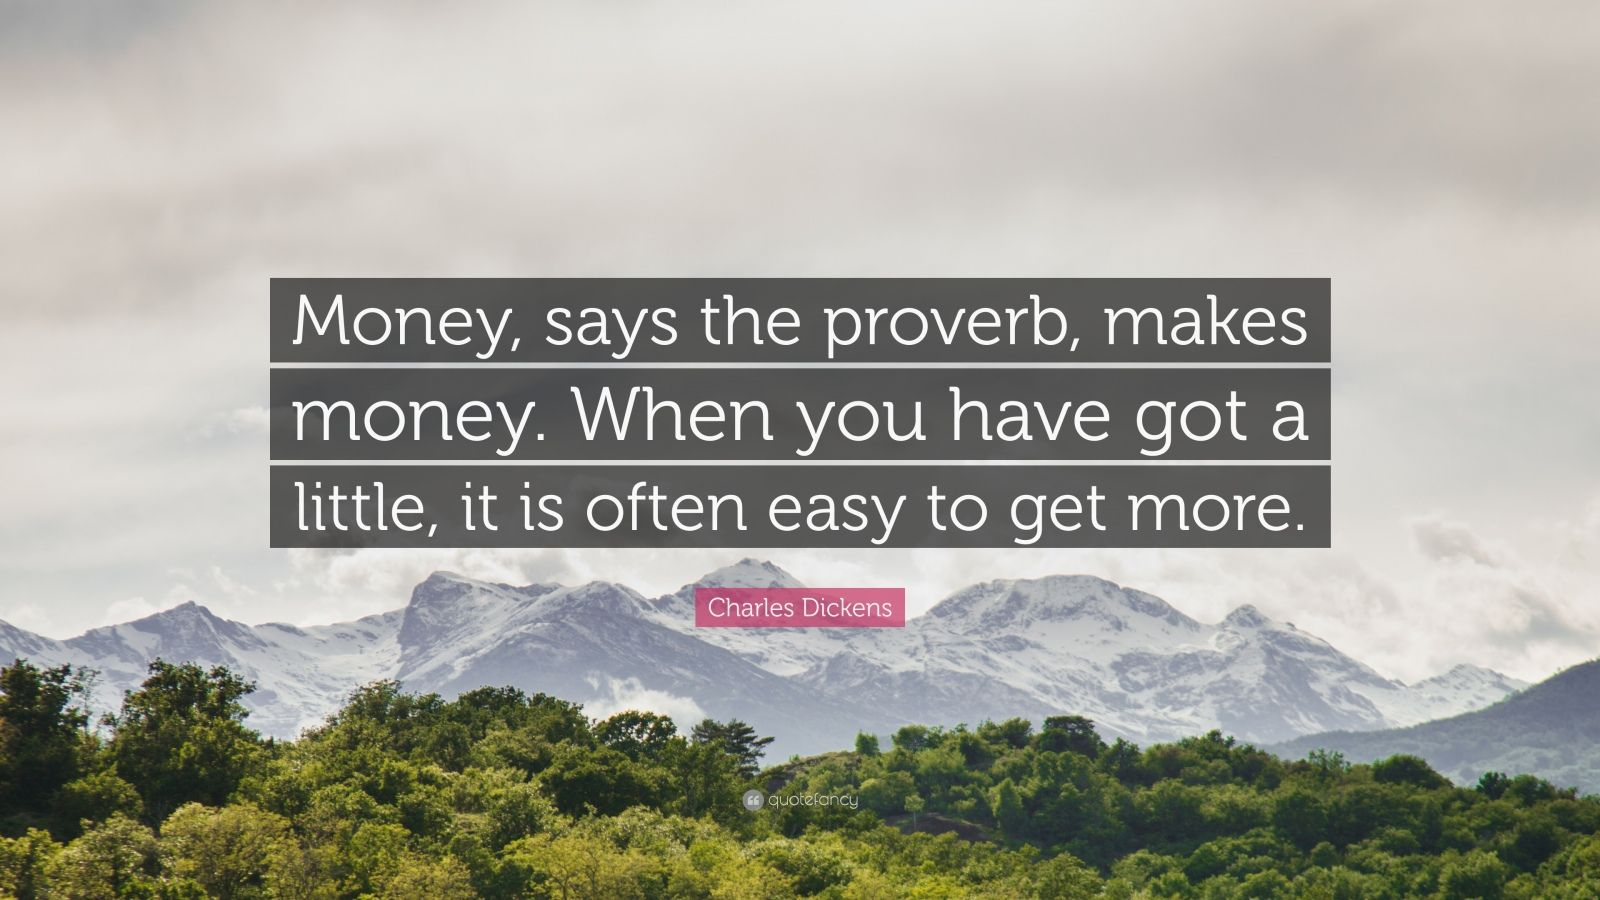 """Charles Dickens Quote: """"Money, says the proverb, makes money. When you have got a little, it is often easy to get more."""""""